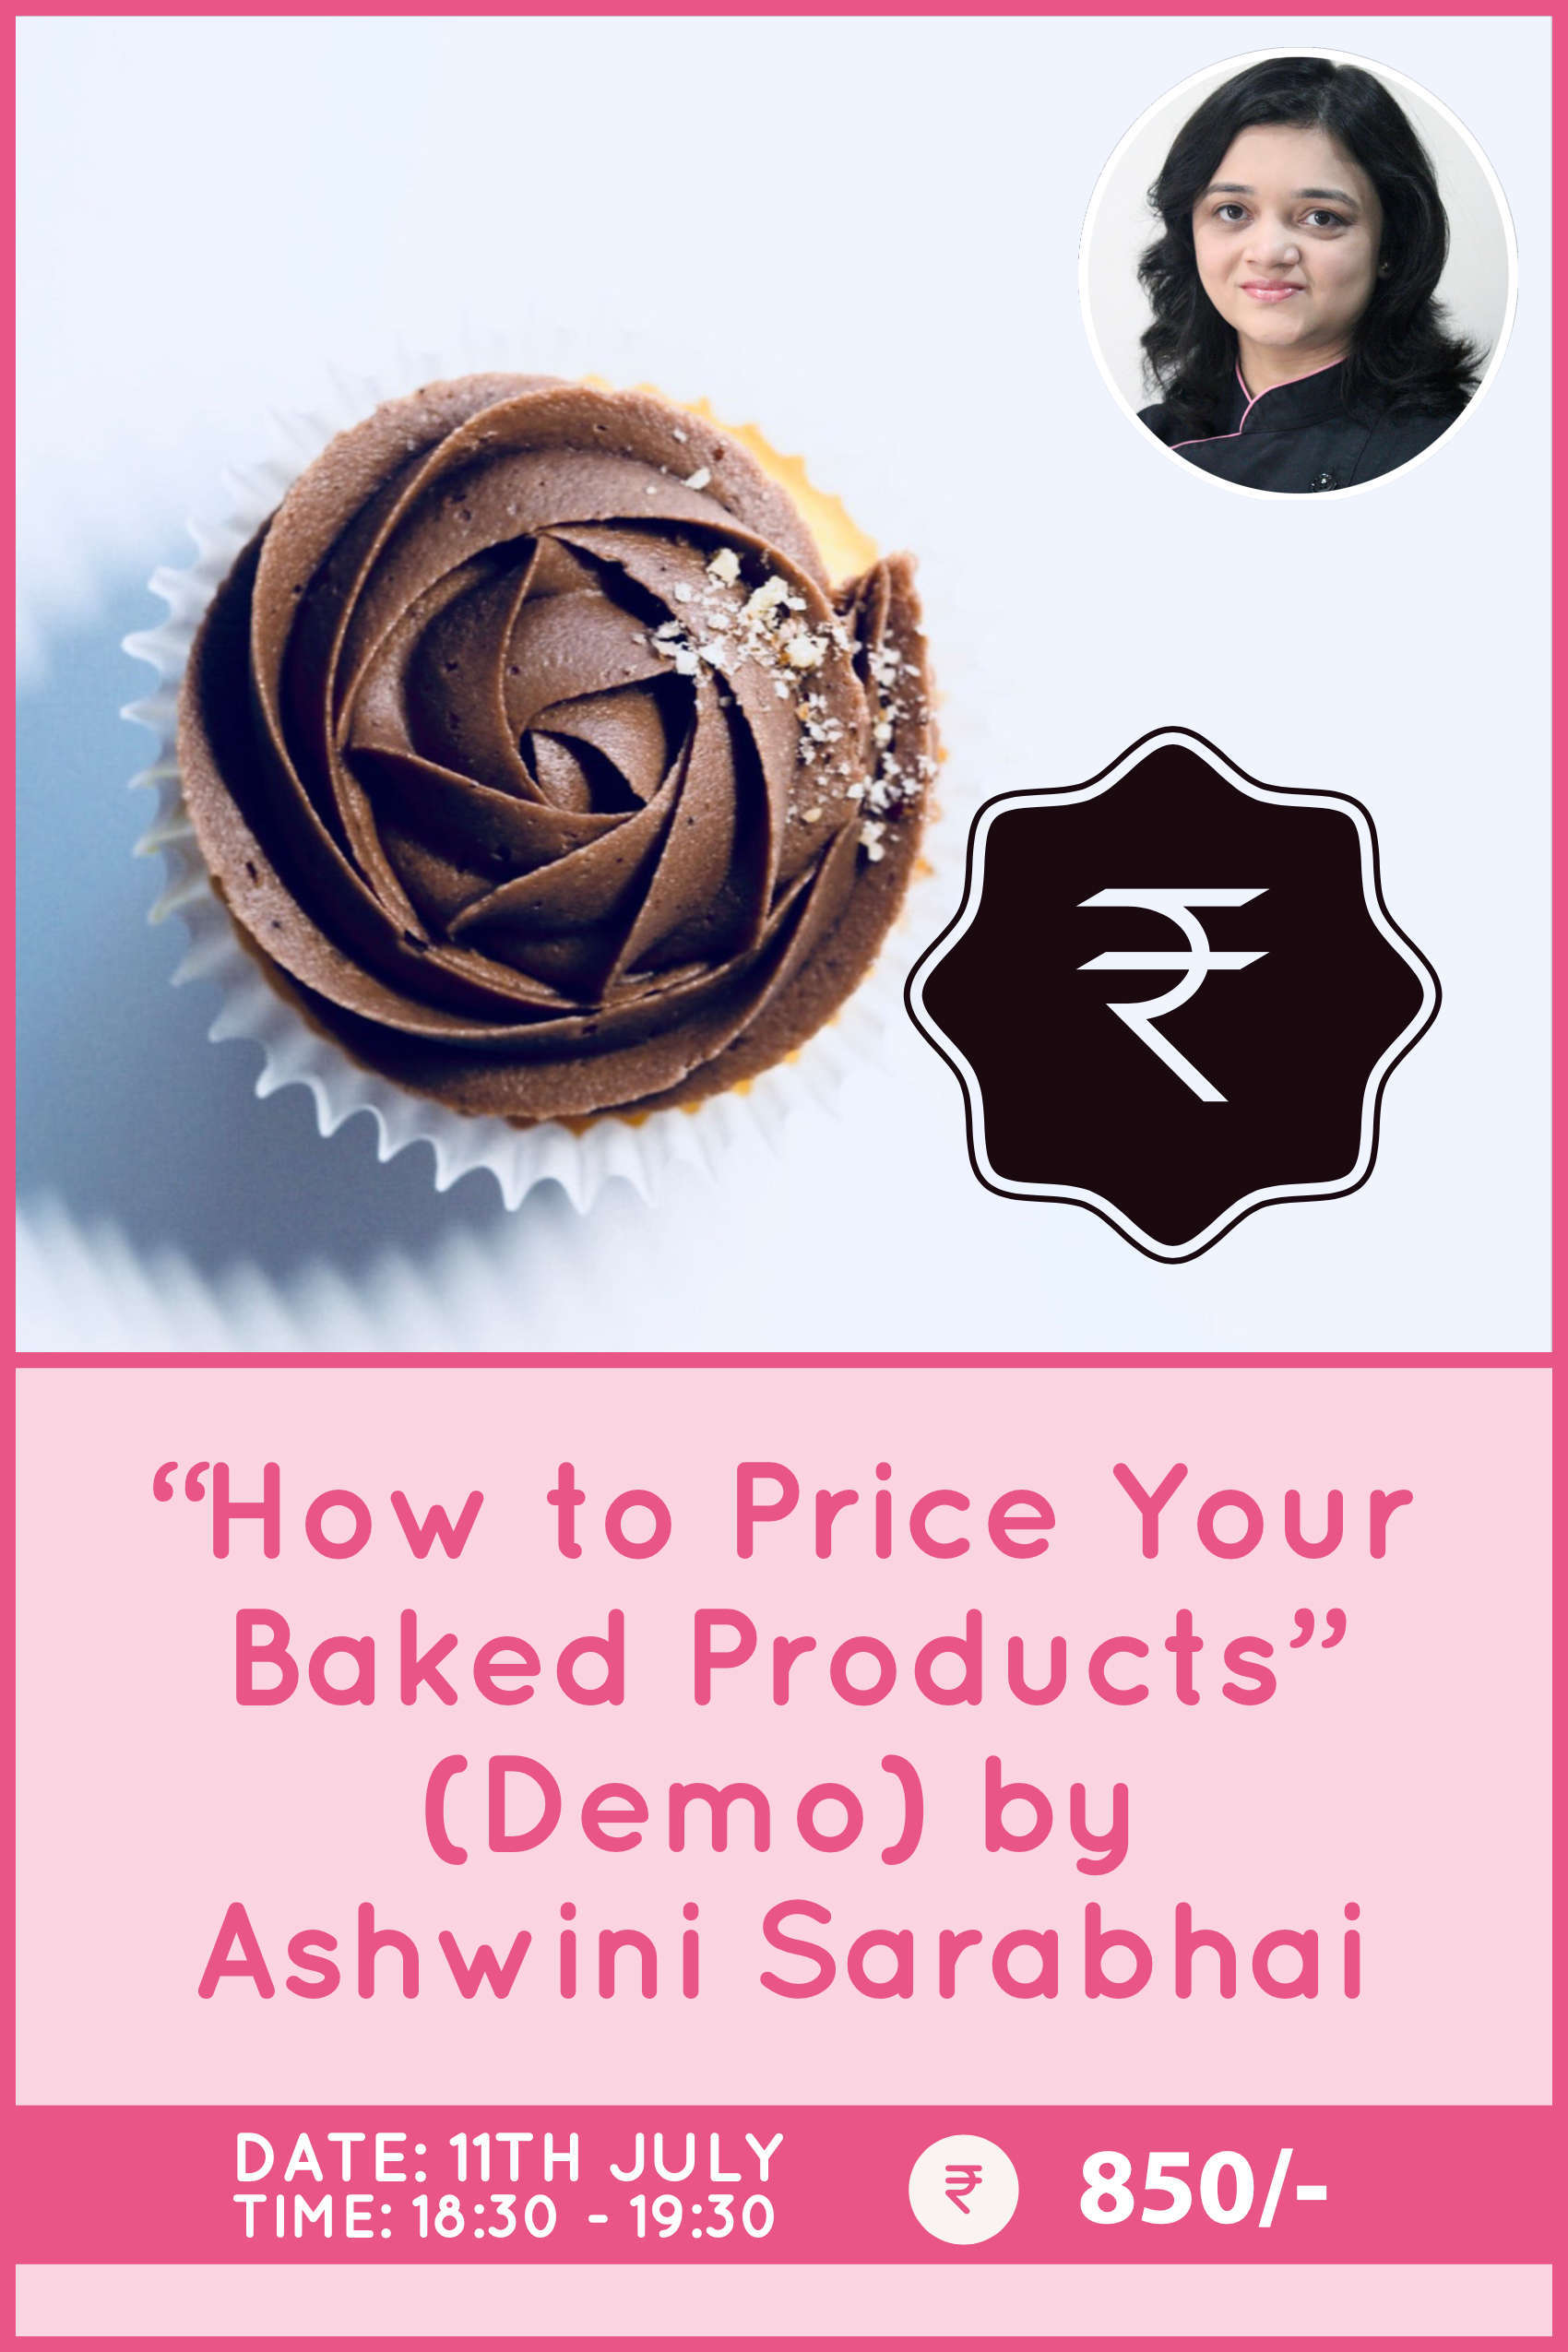 How to price your baked products by Ashwini Sarabhai